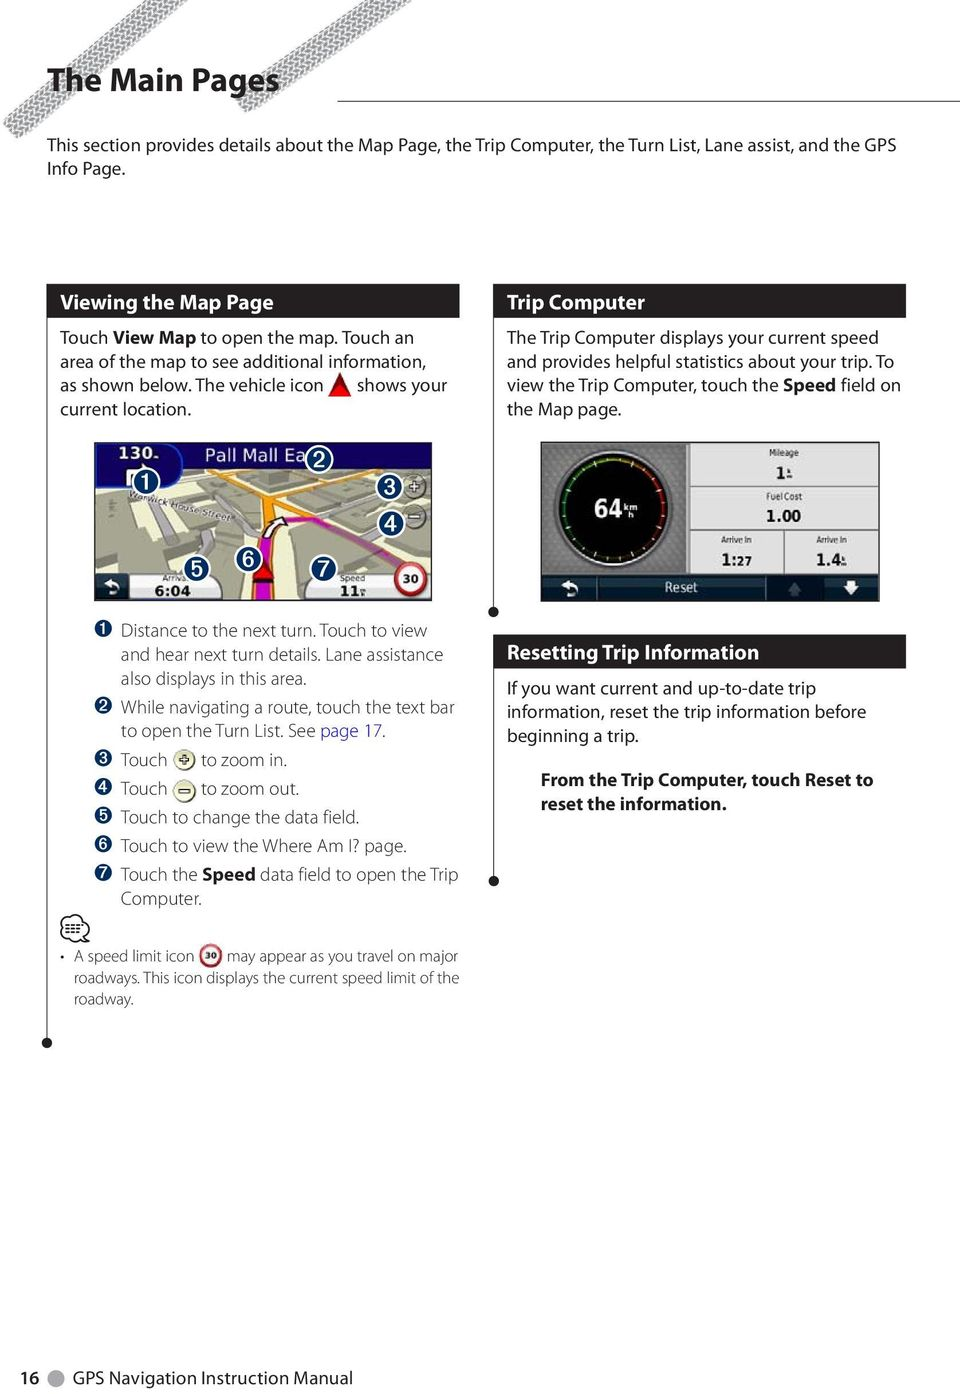 Touch to view and hear next turn details. Lane assistance also displays in this area. ➋ While navigating a route, touch the text bar to open the Turn List. See page 17. ➌ Touch to zoom in.